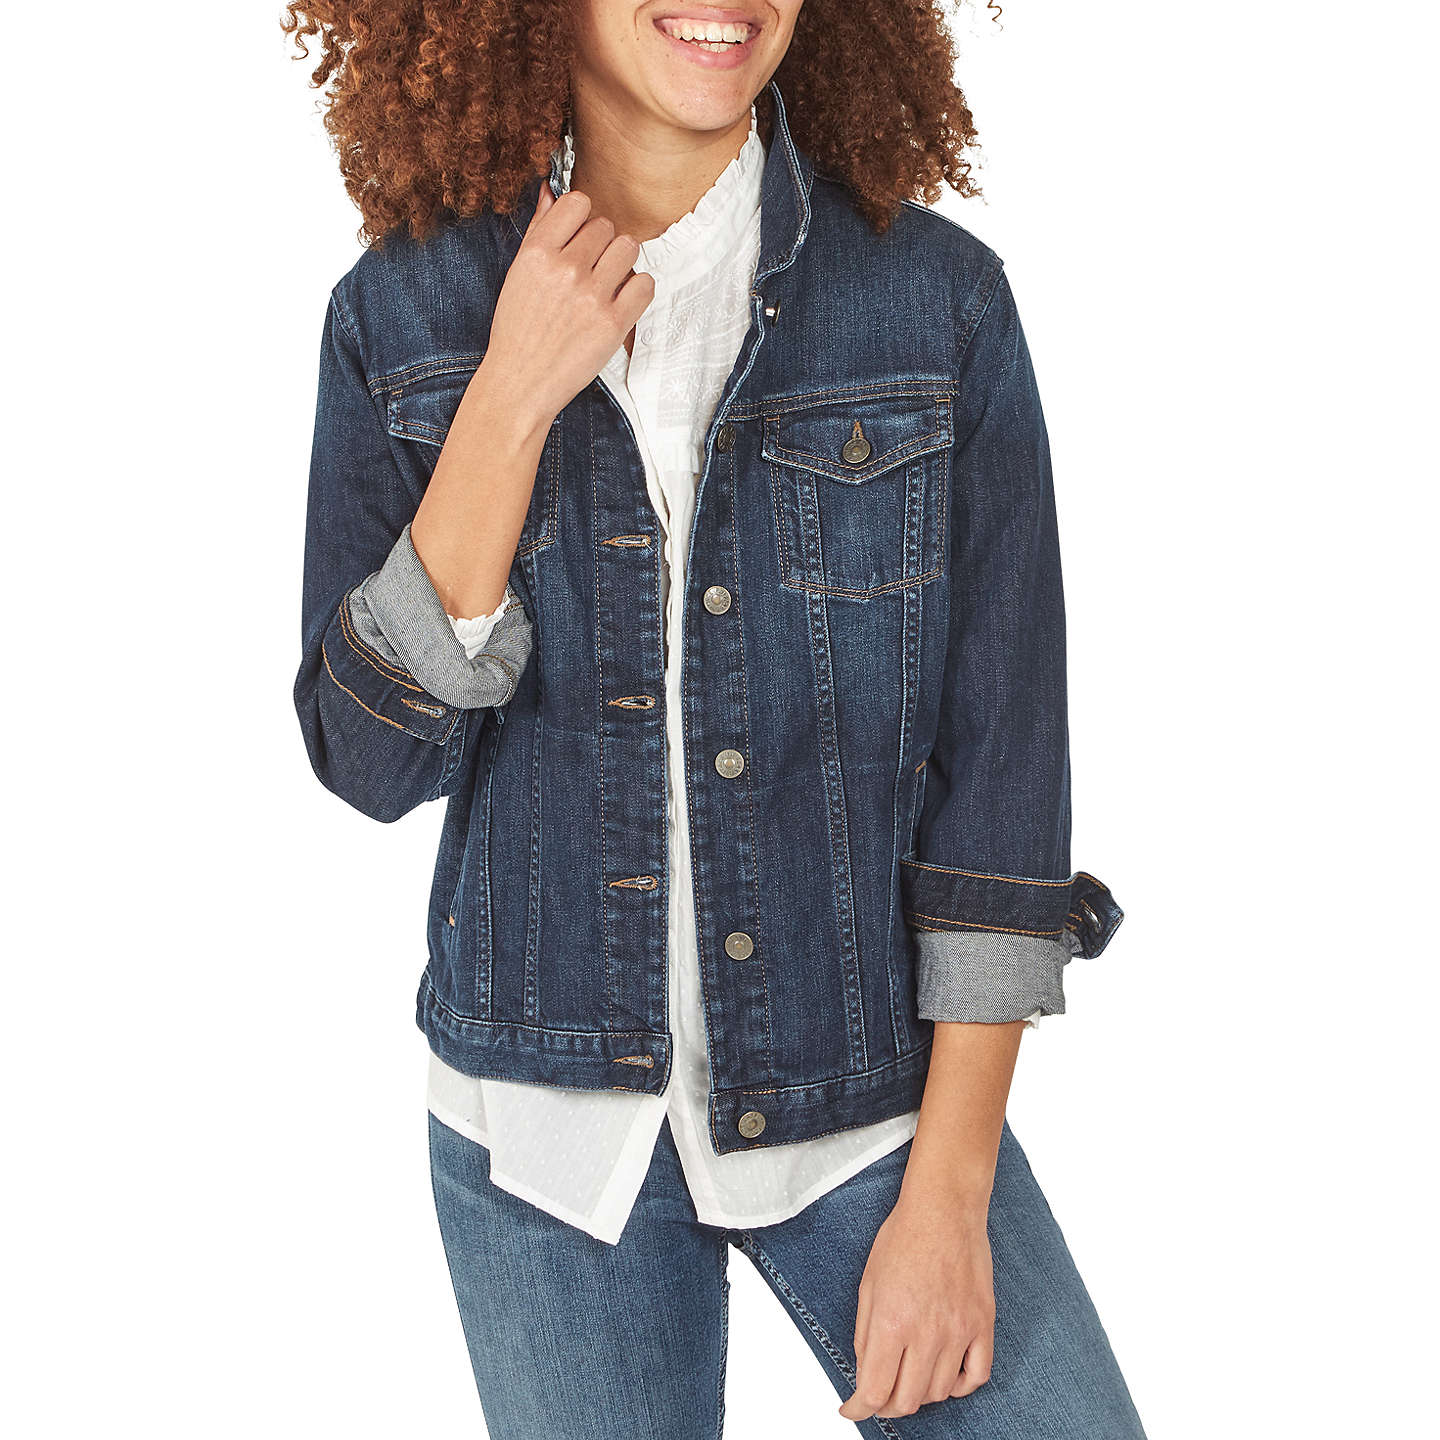 BuyFat Face Tasha Denim Jacket, Dark Denim, 8 Online at johnlewis.com